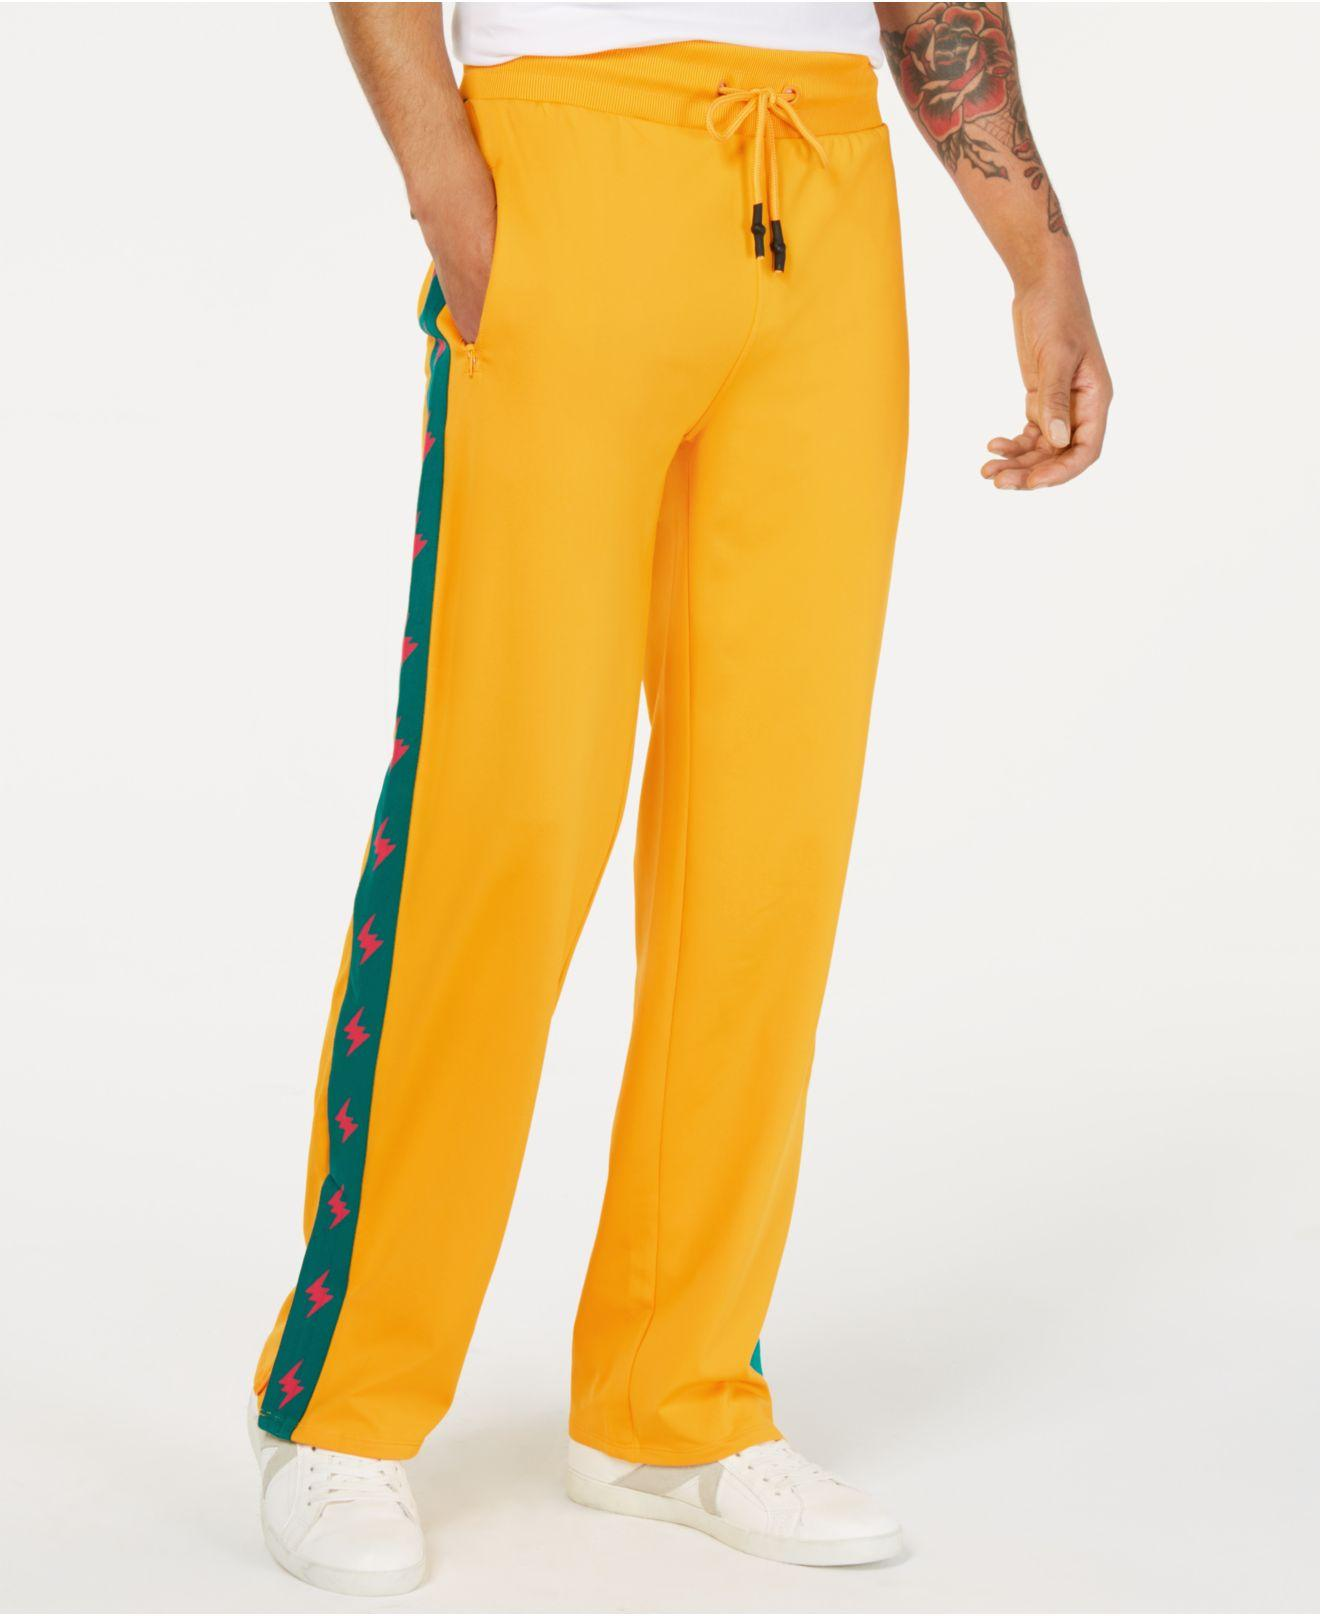 793e30f98766 Lyst - Guess J Balvin Vibras Track Pants in Yellow for Men